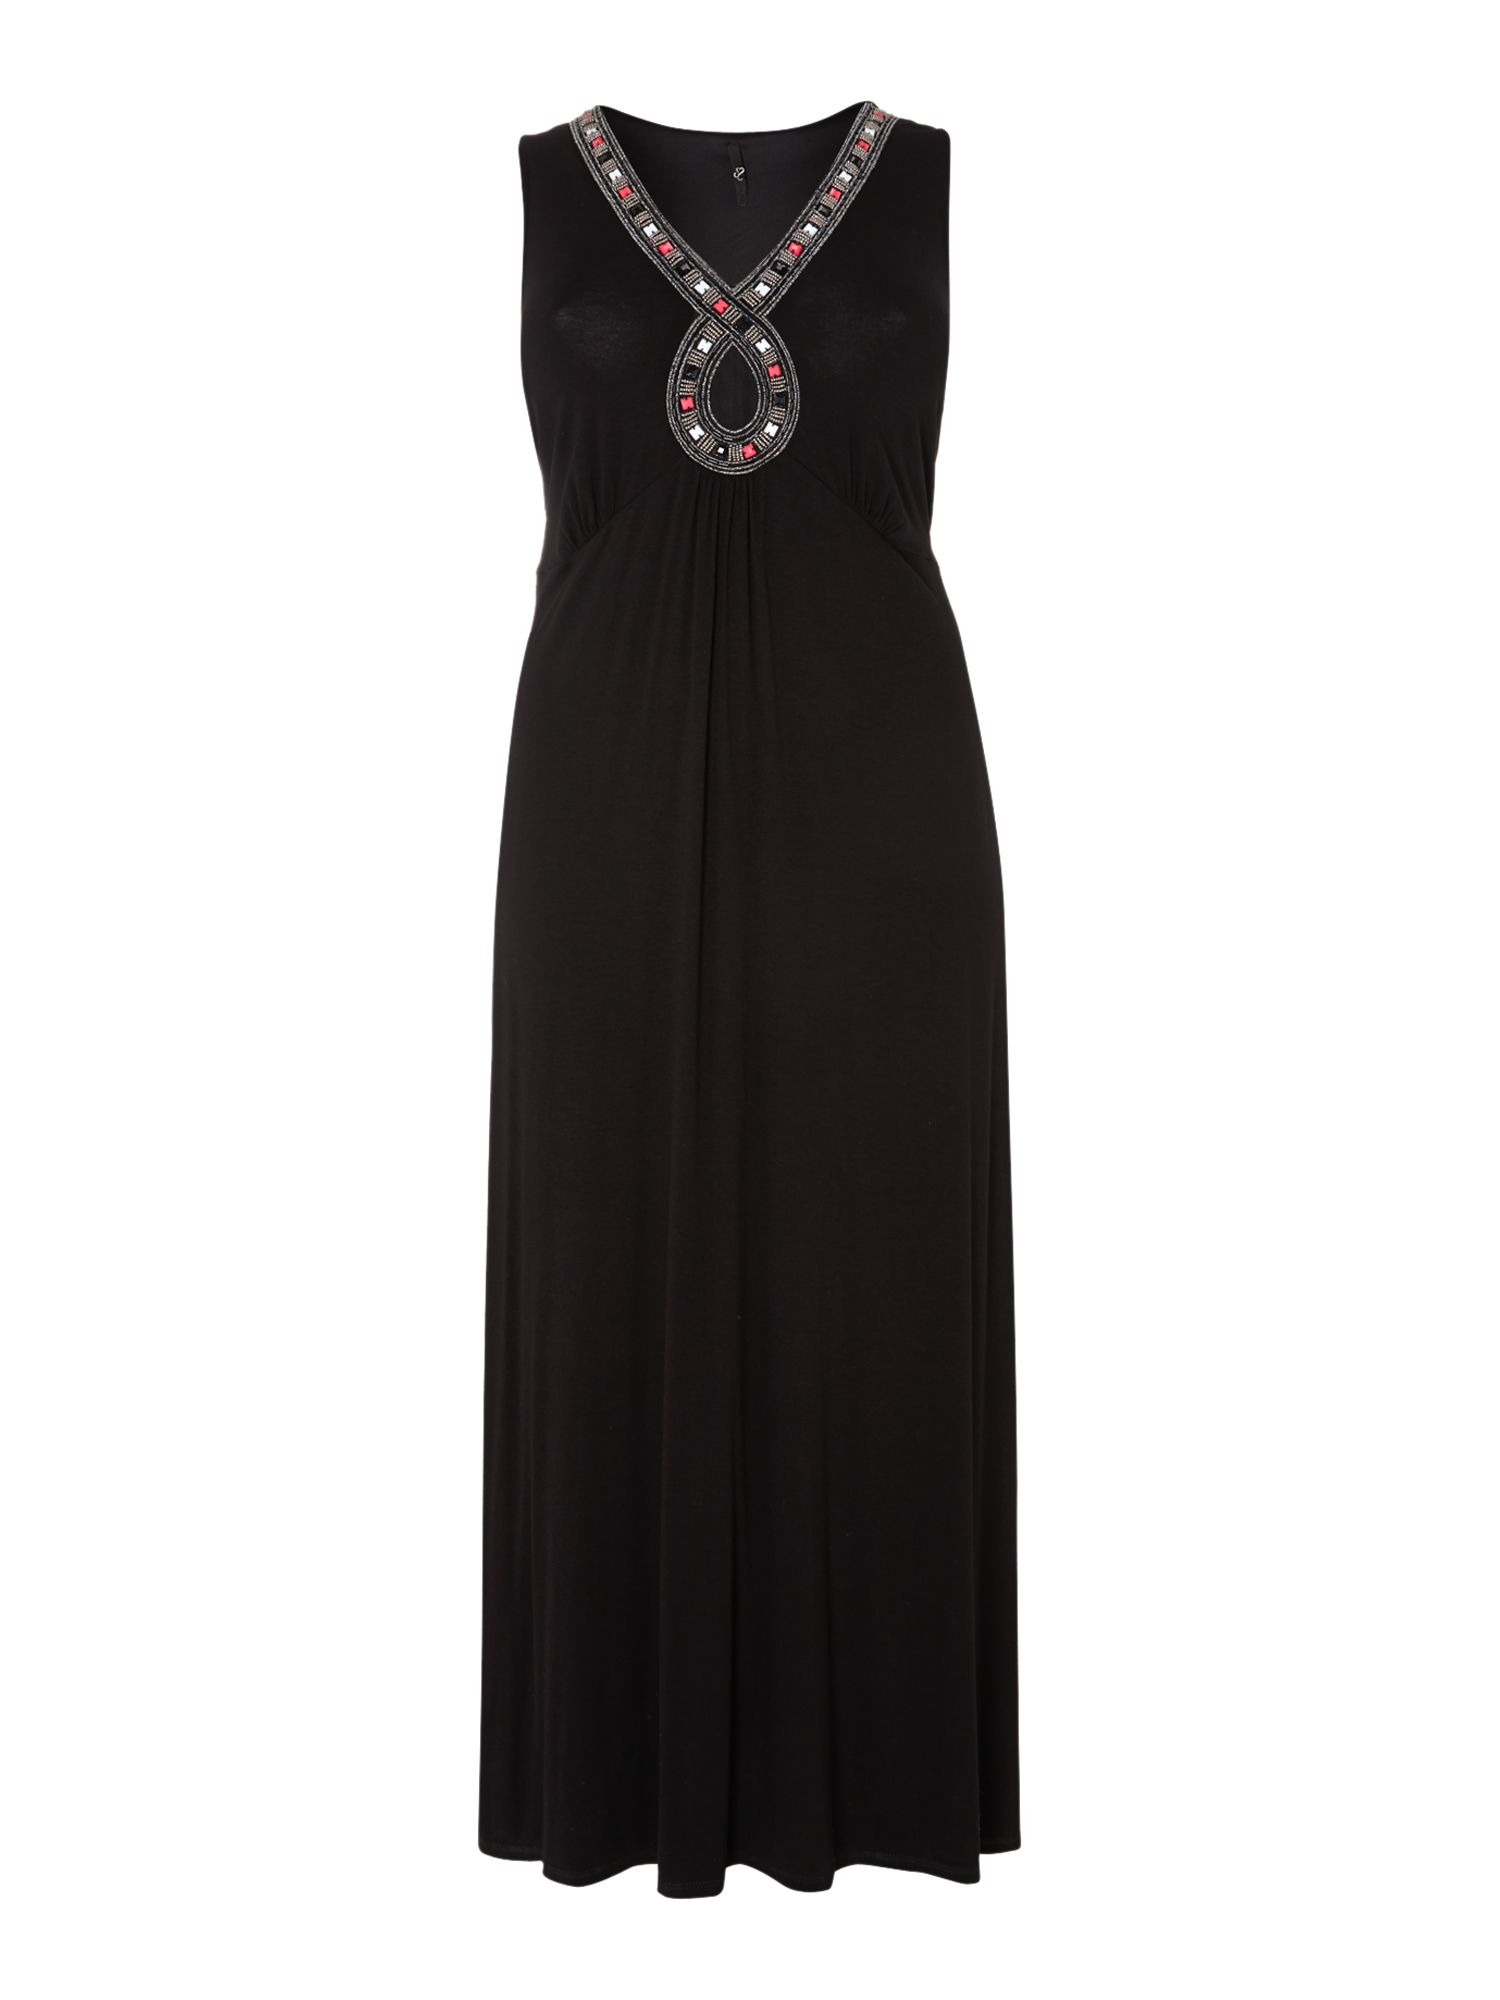 Black figure of 8 maxi dress